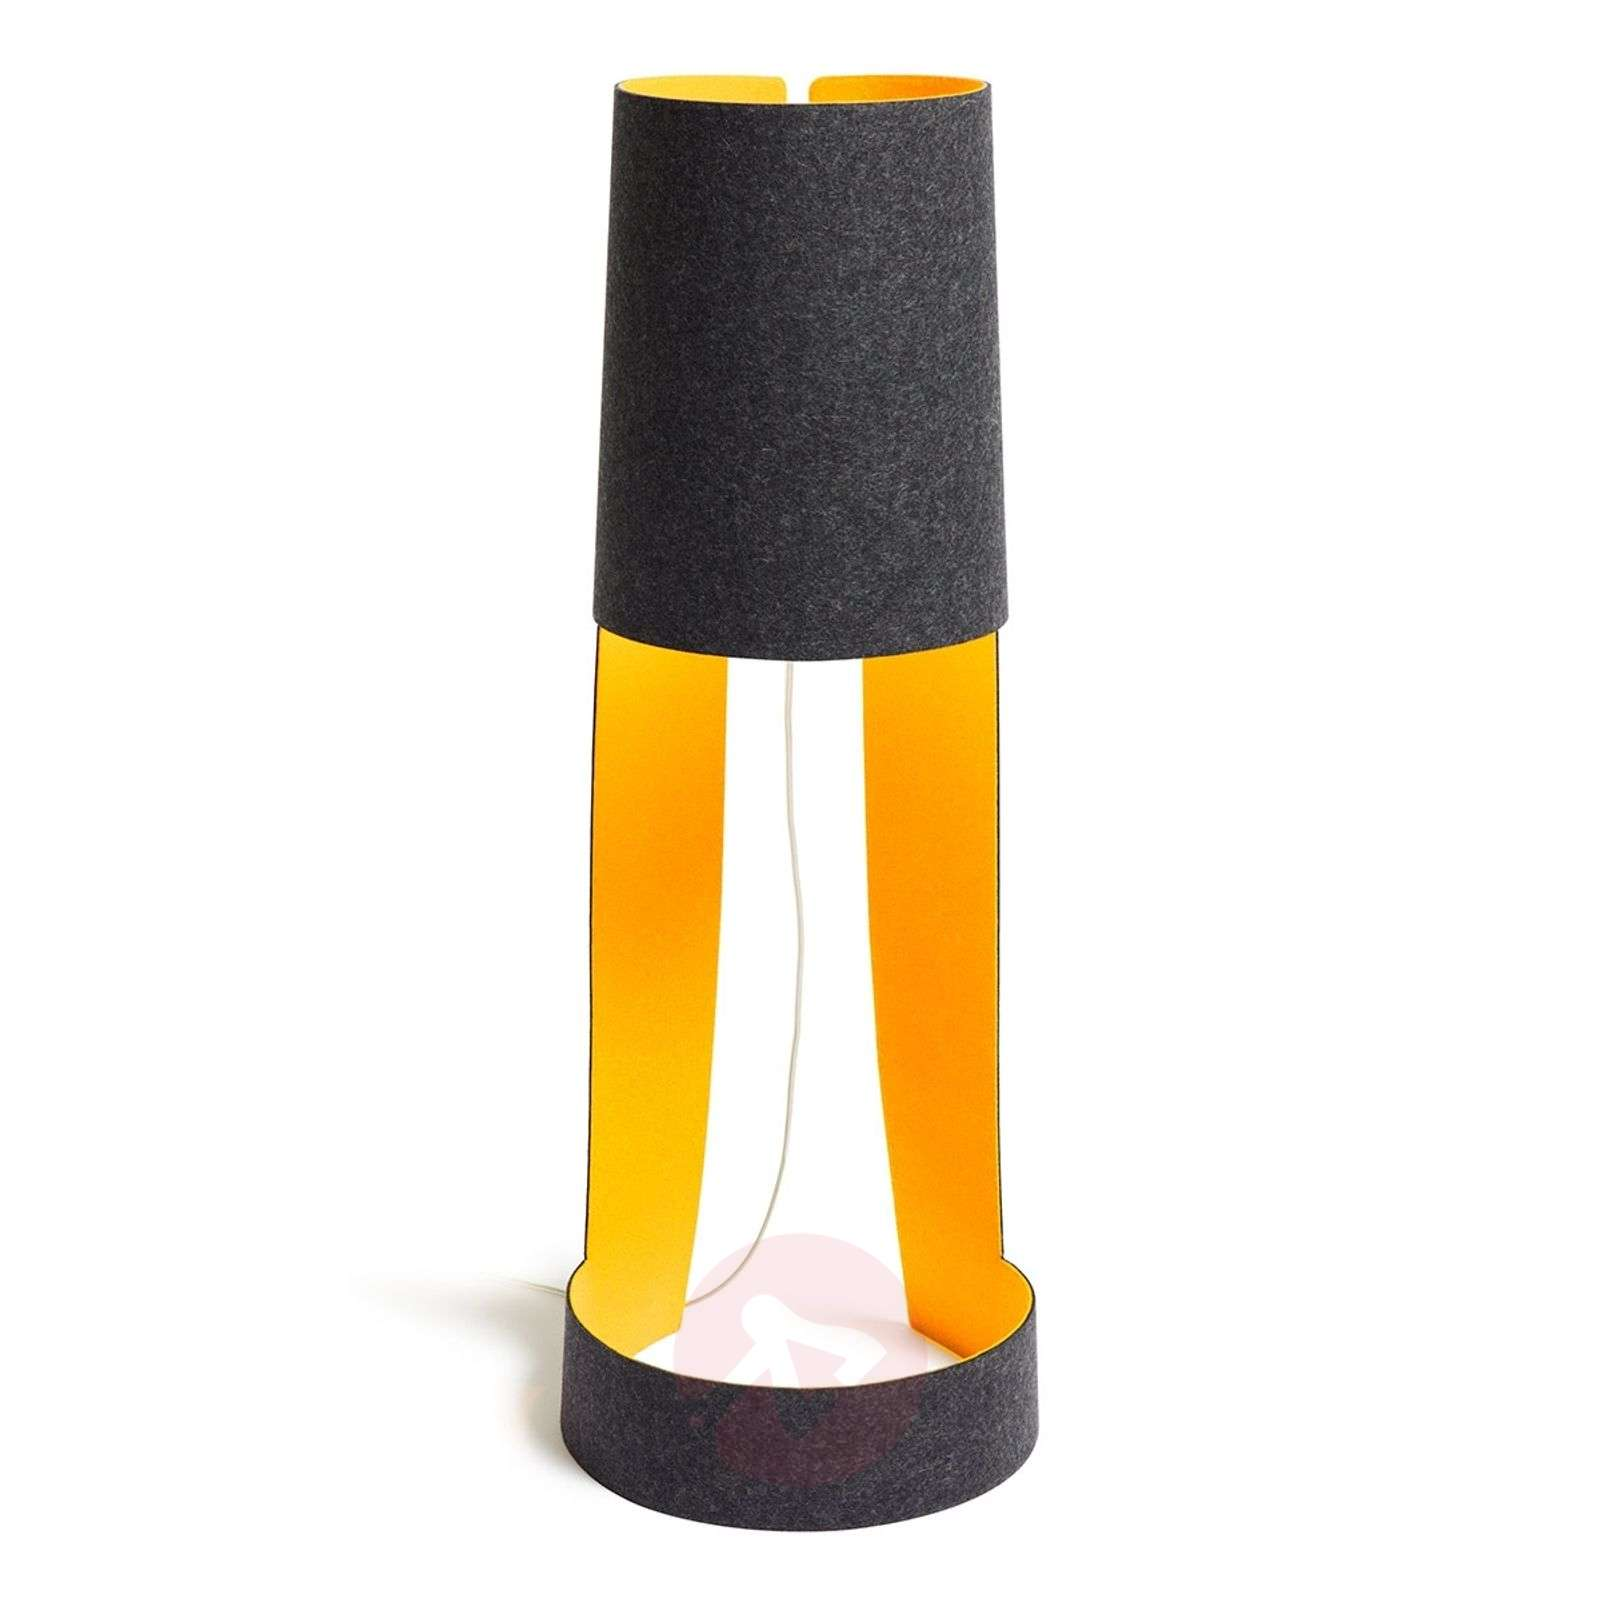 Petit lampadaire design Mia XL graphite/orange-2600489-01